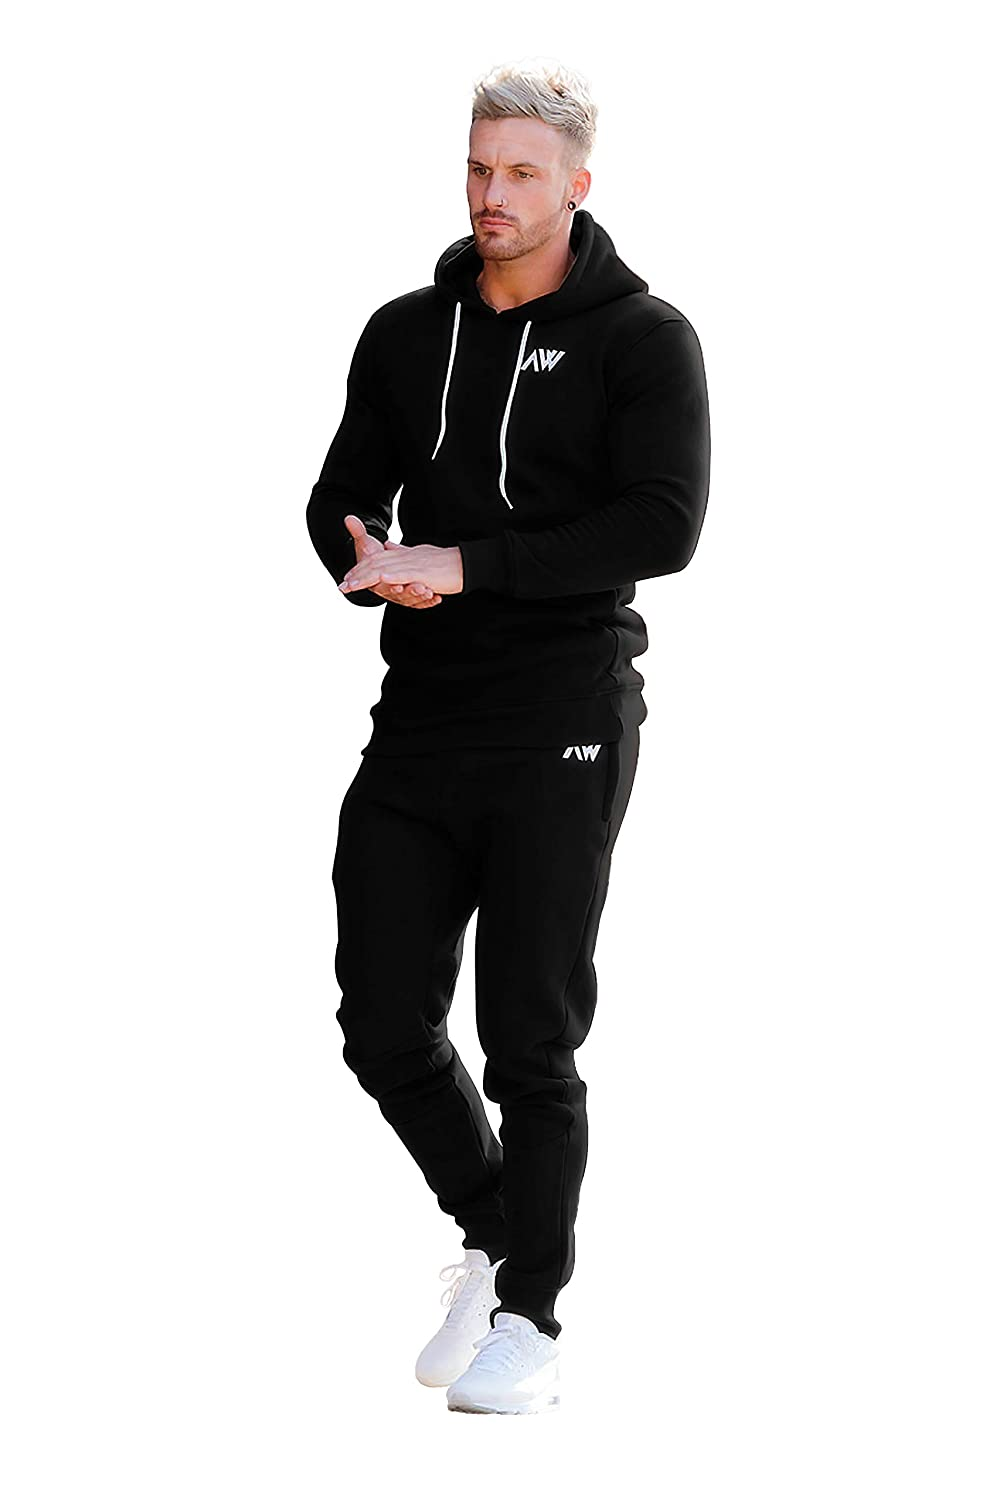 Fitness und Gym Trainingsanzug Aktiv Sport Stretch Slim Fit Top mit Hose Aspire Wear Herren Schwarz Core Trainingsanzug Oberteil und Hosen Set